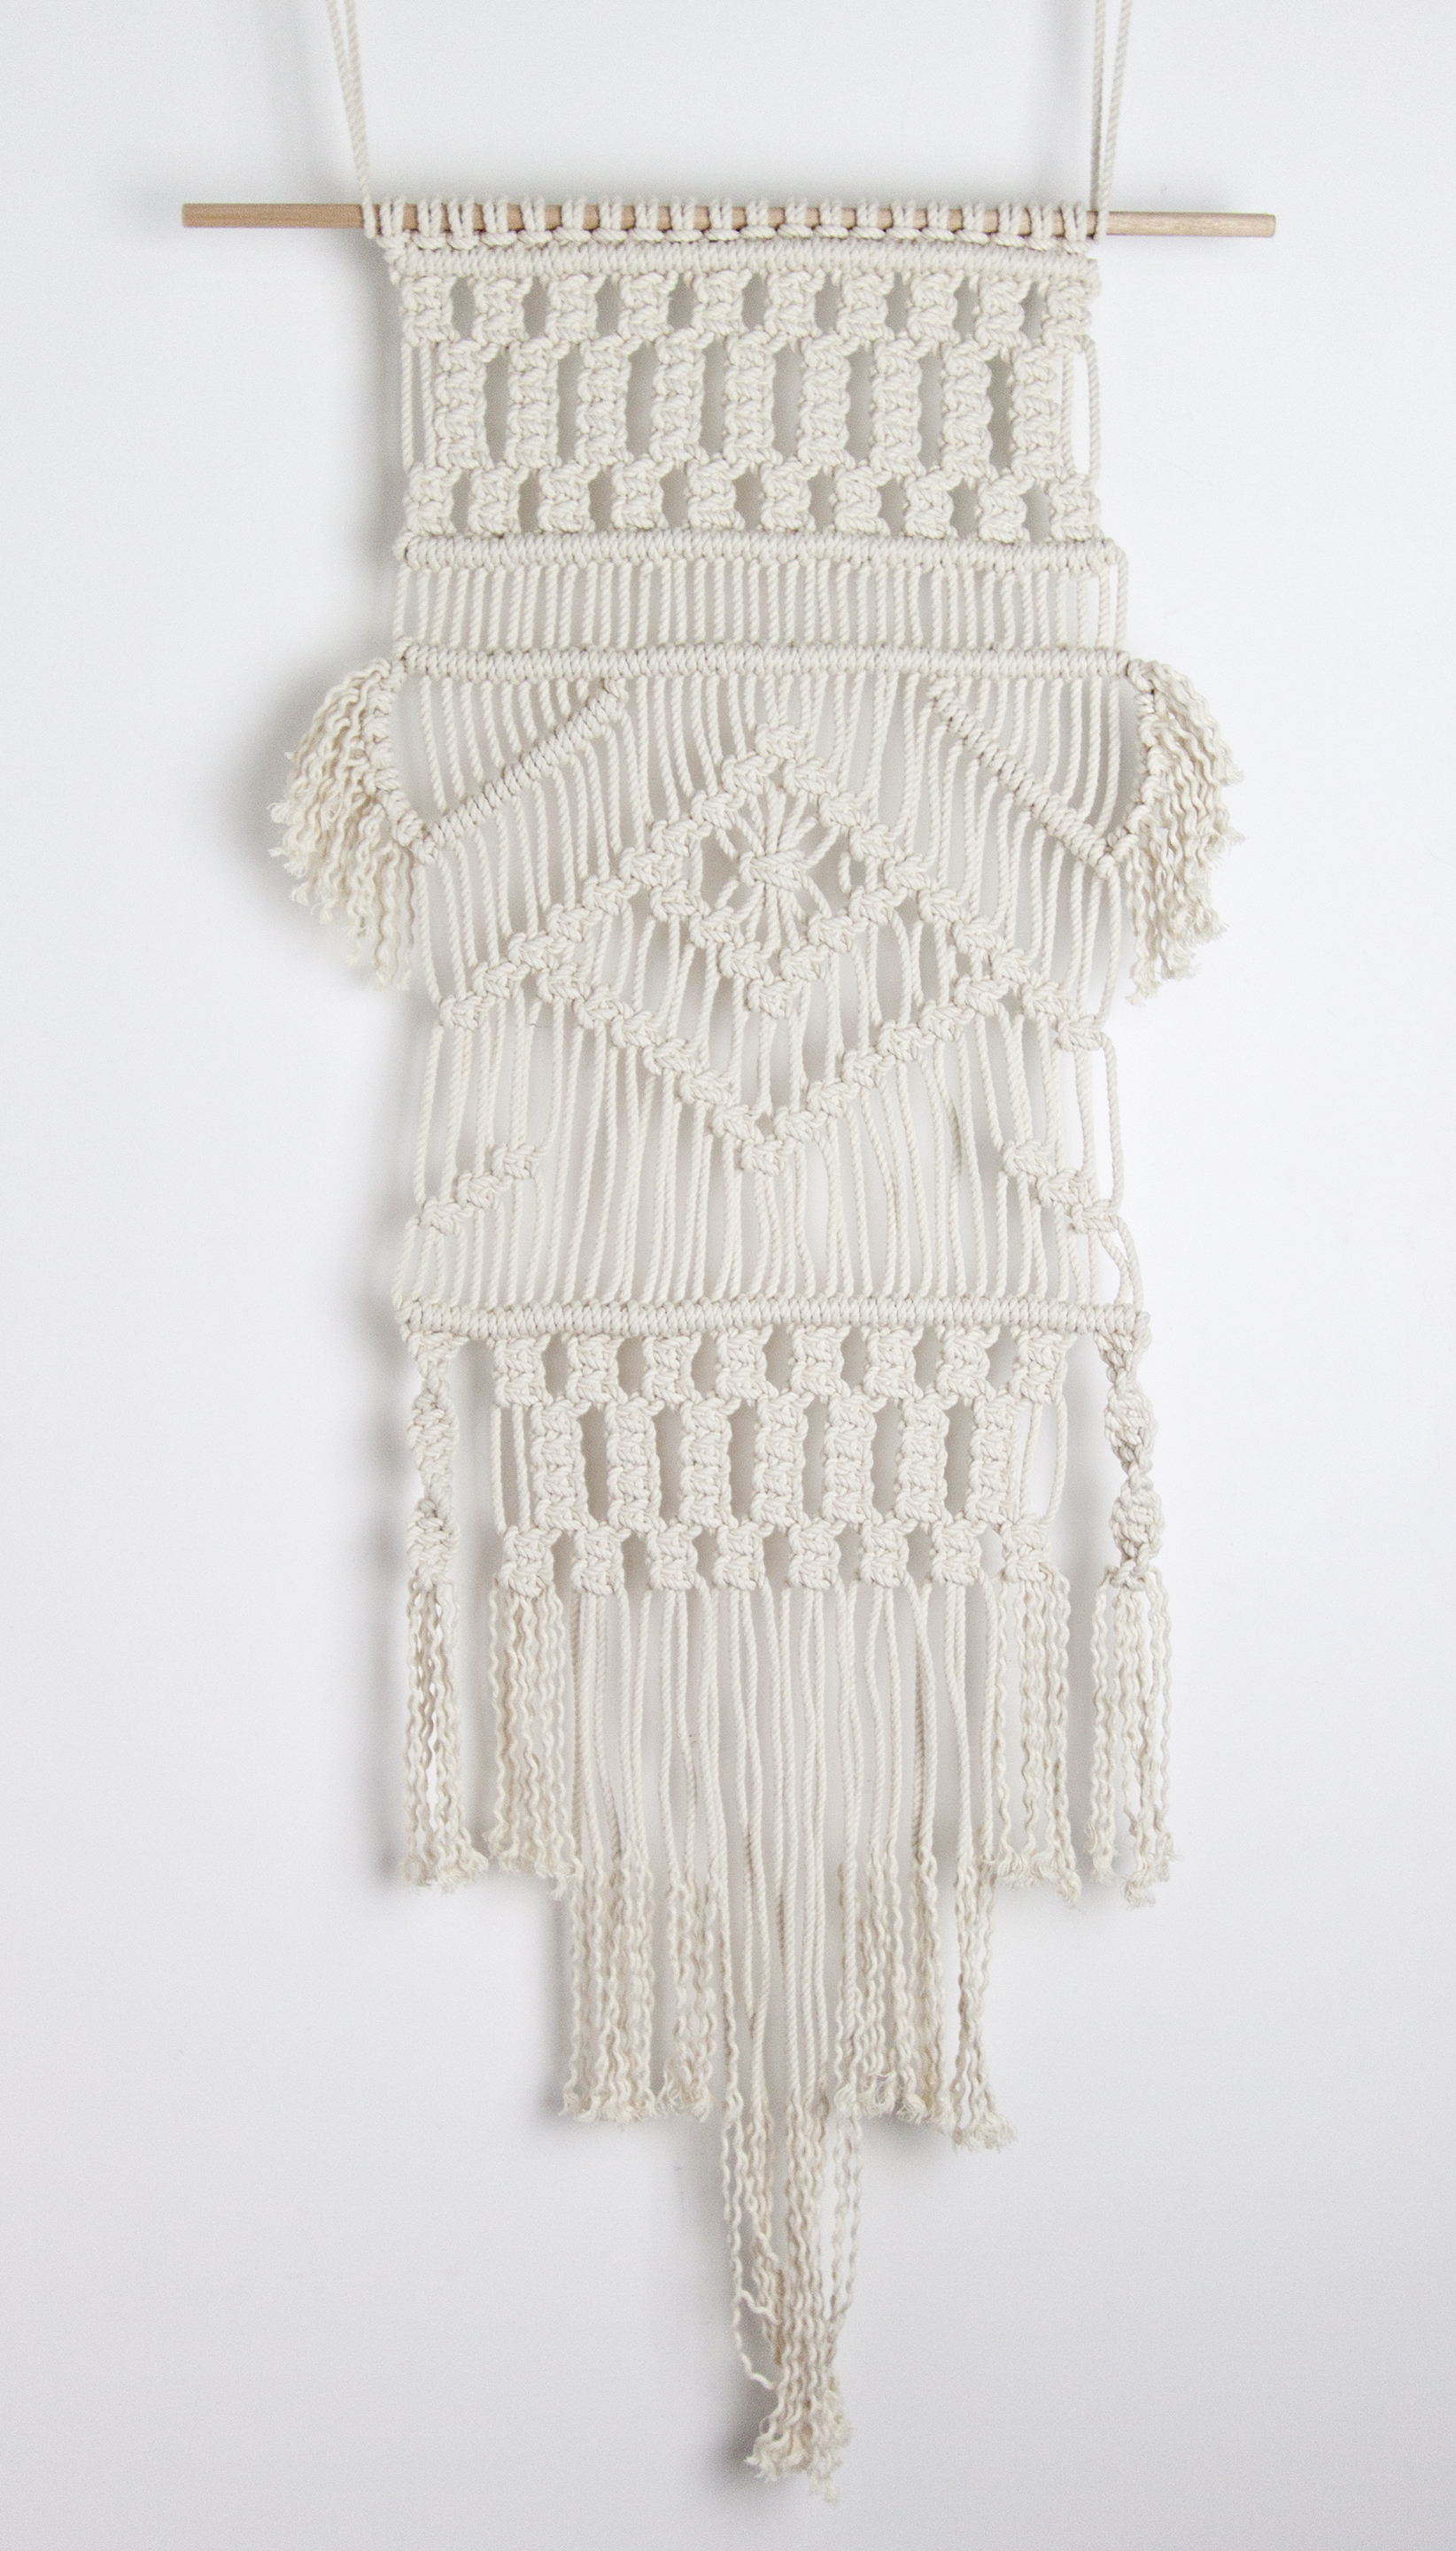 The Corner Store Gallery - macrame workshop